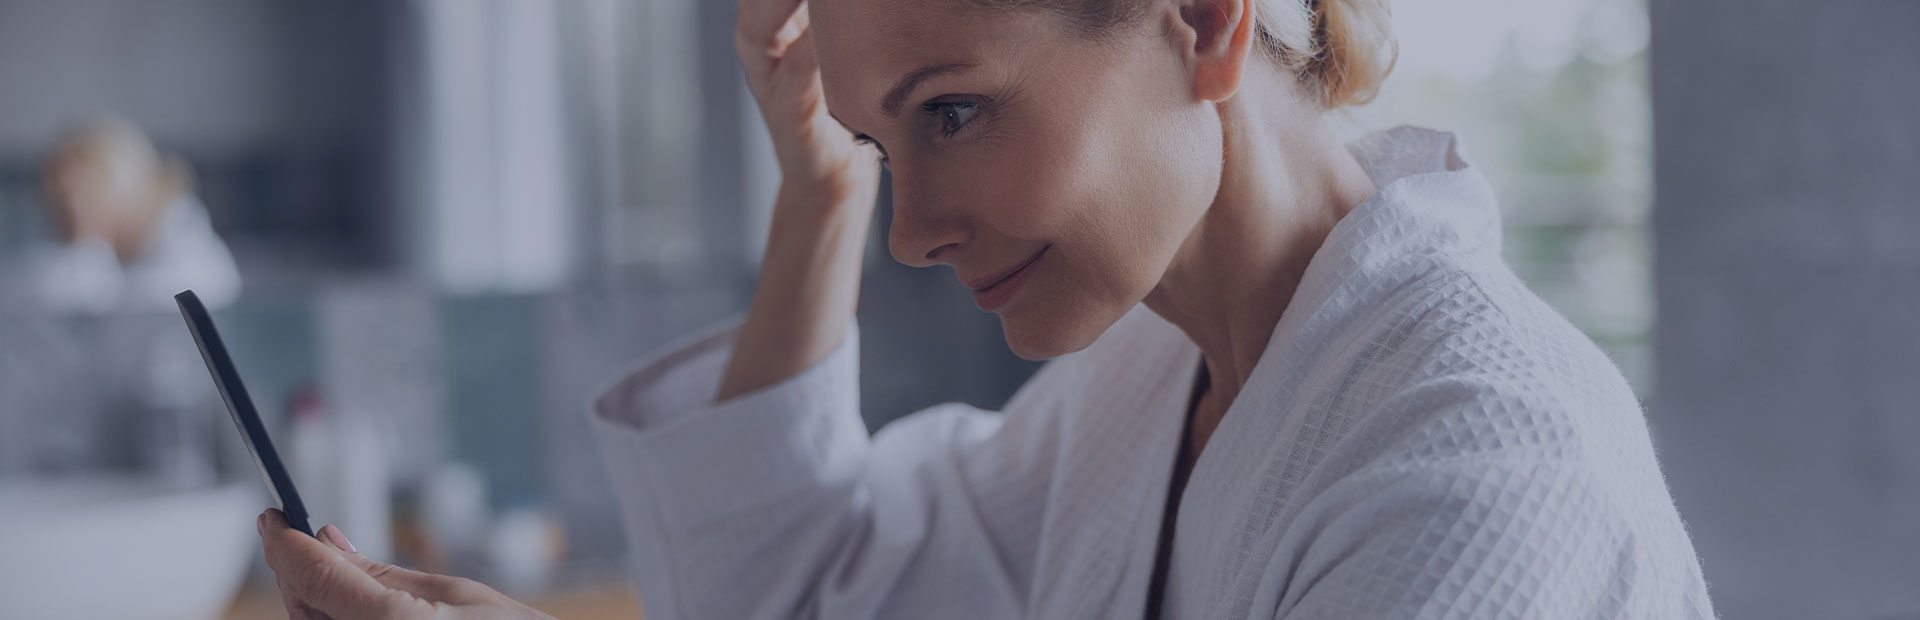 A woman in her 50s in a white dressing gown looks into a mirror confidently, as she knows how to shift the focus from her dentures.